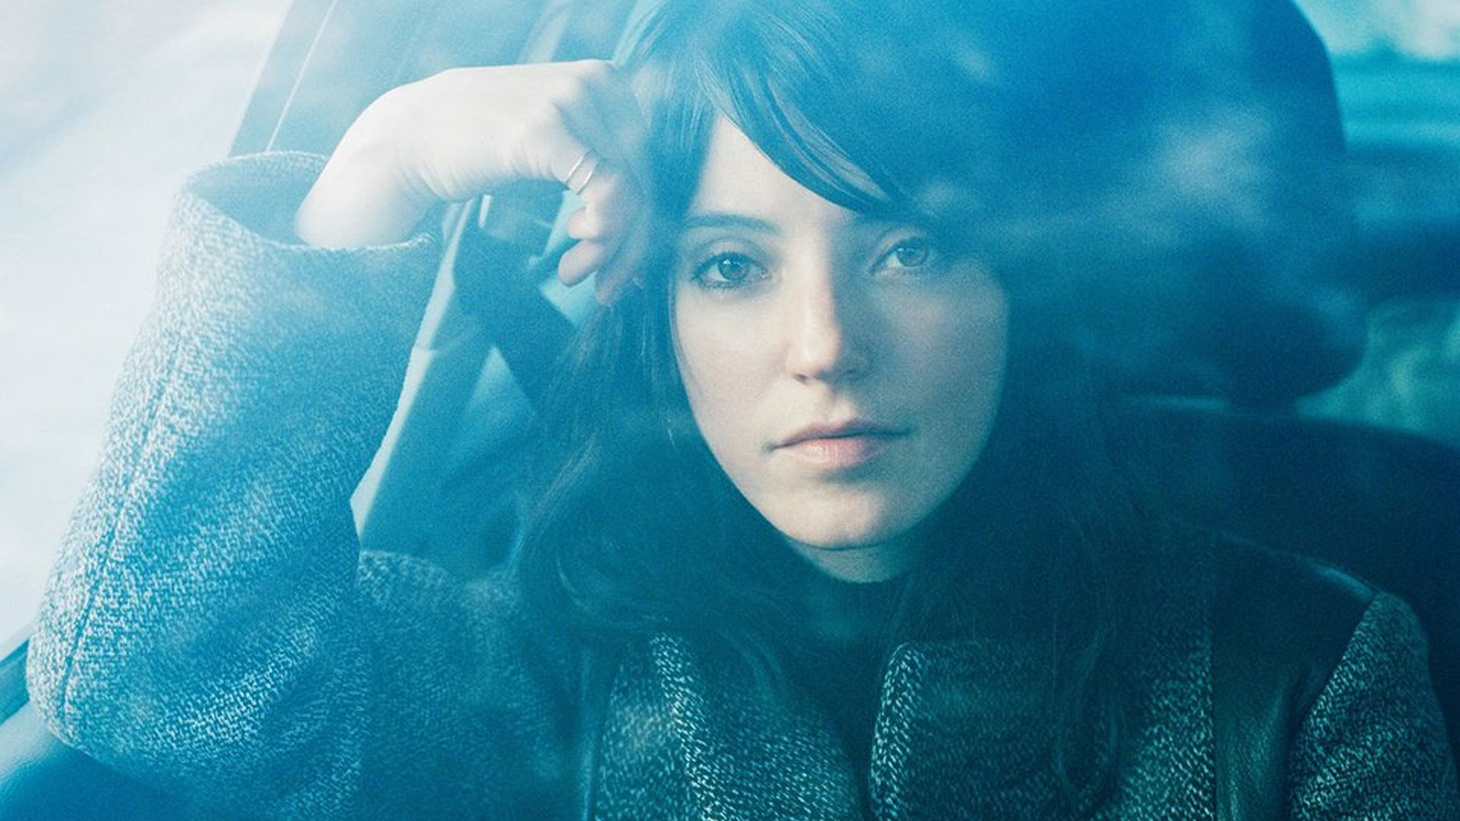 Sharon Van Etten has been playing a brand new song from her forthcoming EP in some of her live shows and now we're pleased to offer the studio version.